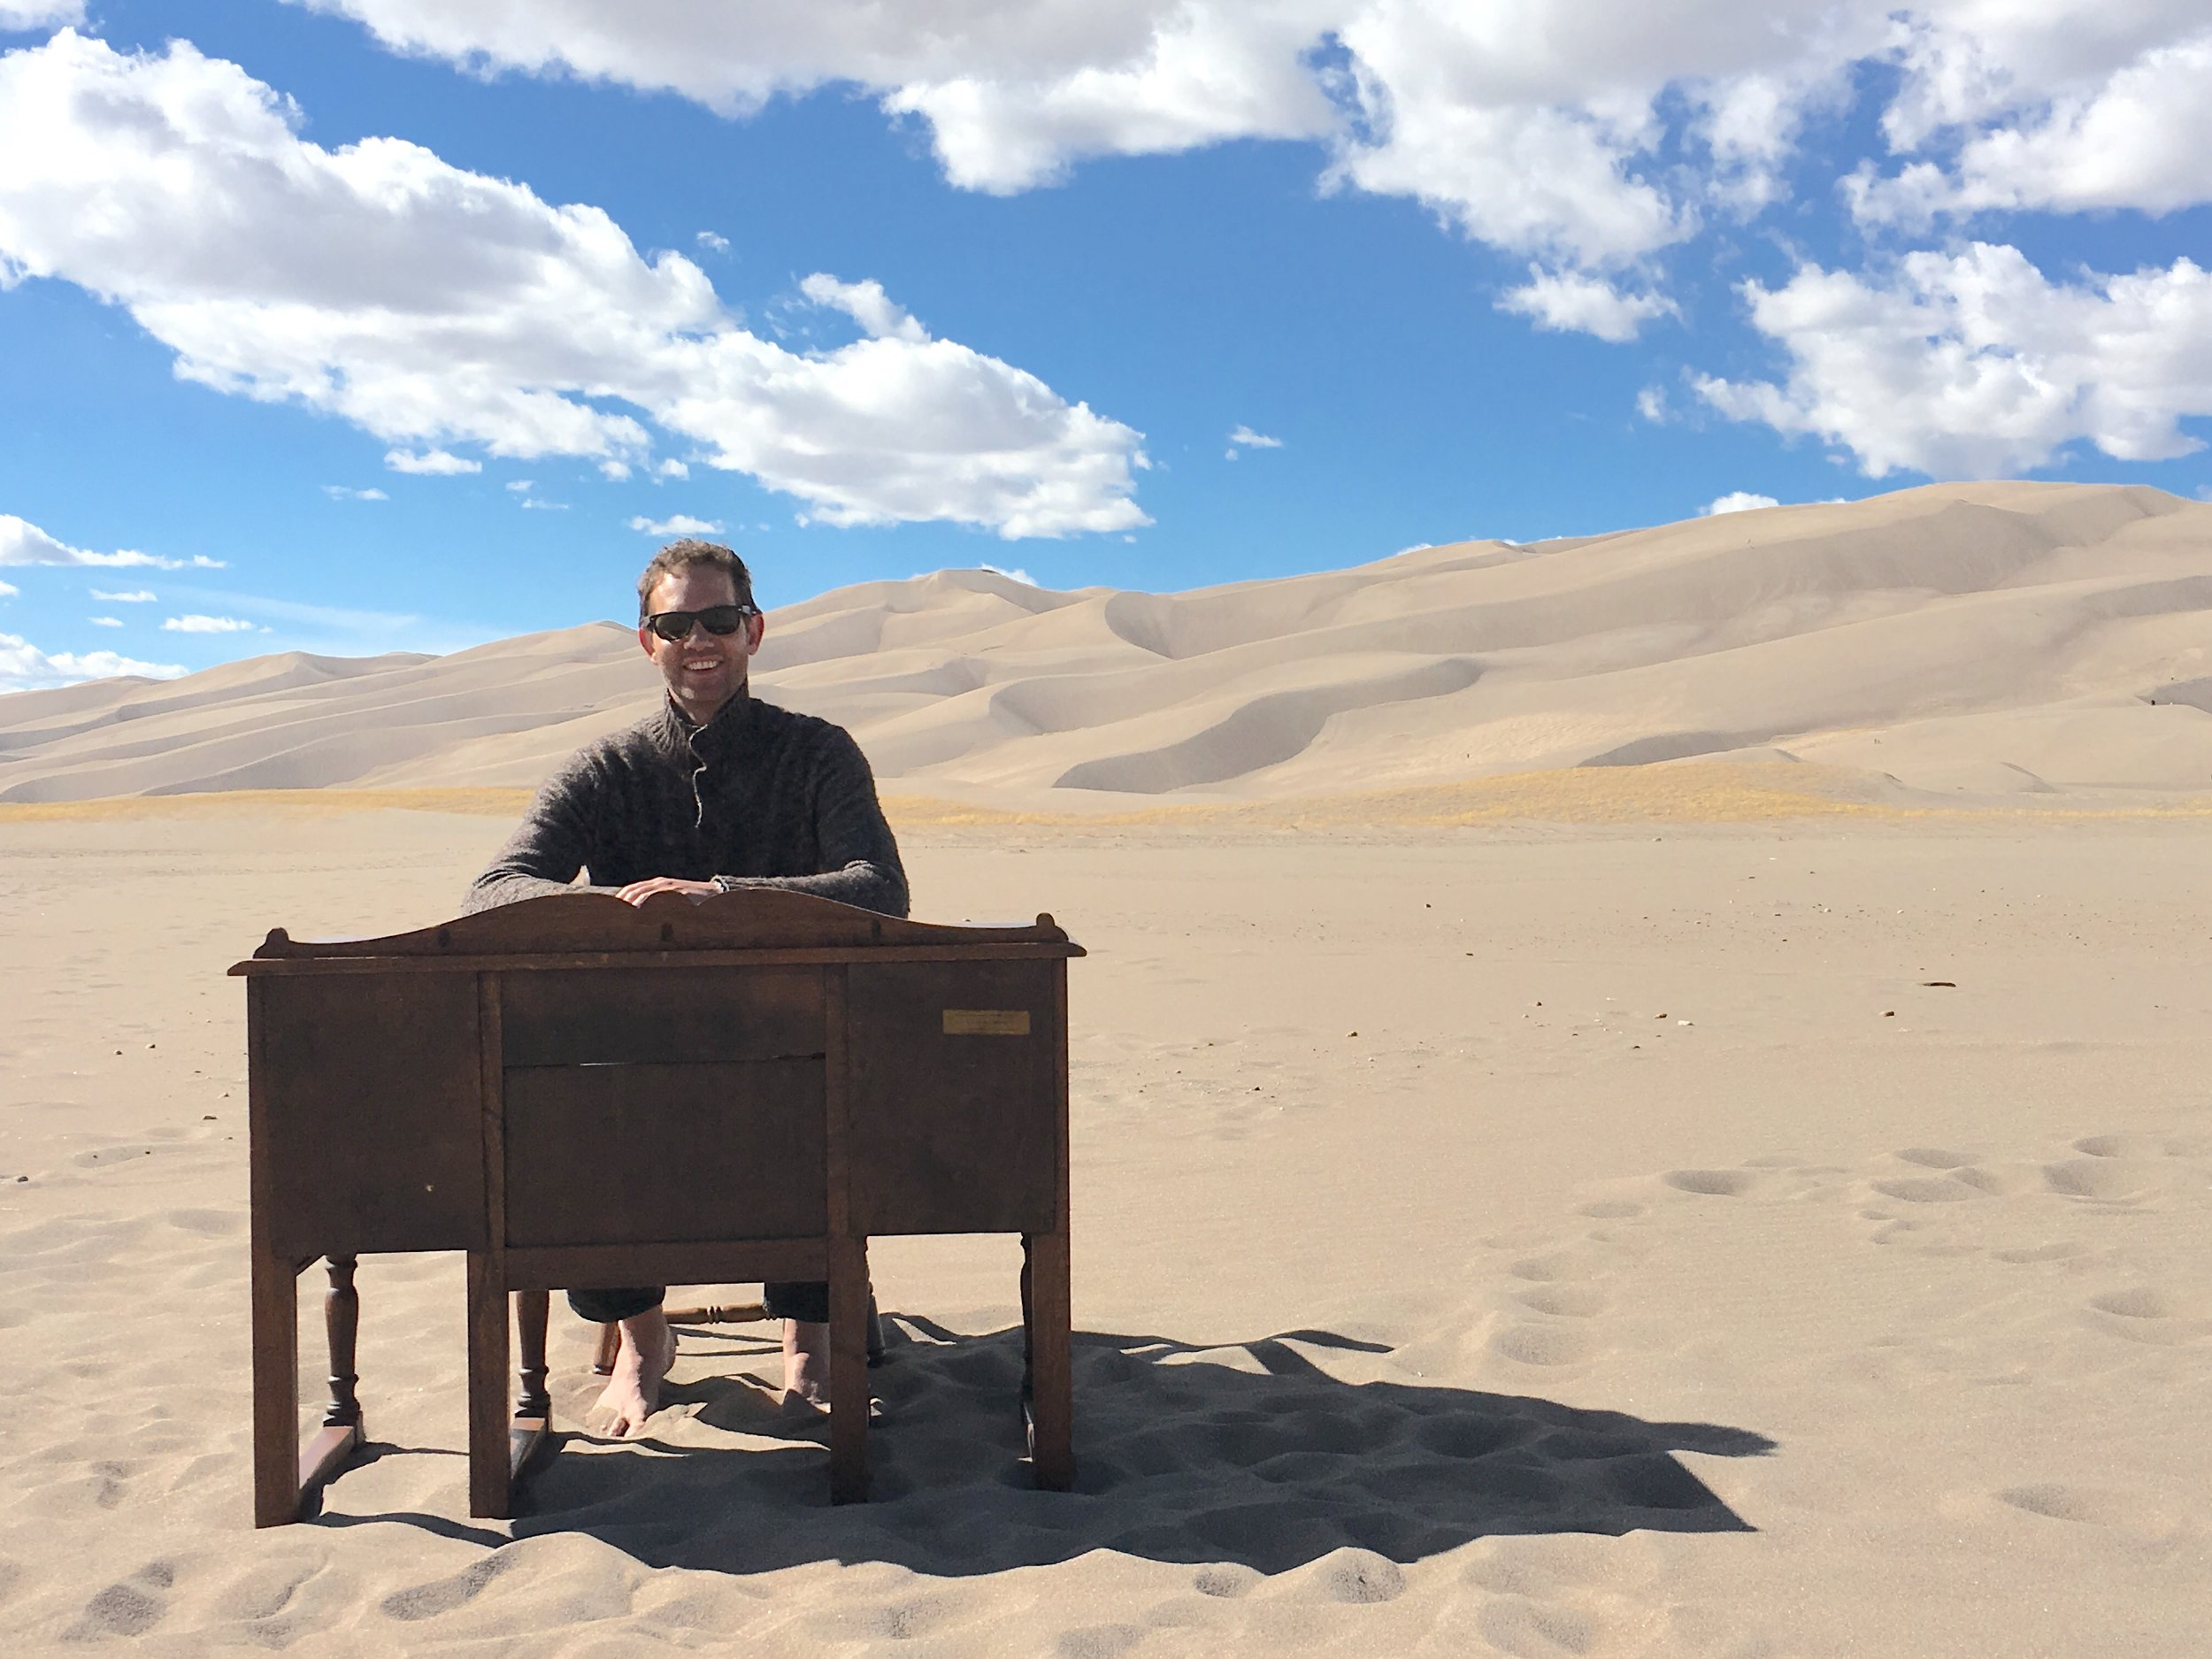 Andrew McFadyen-Ketchum_The True Magicians_Nicole York_Great Sand Dunes National Park